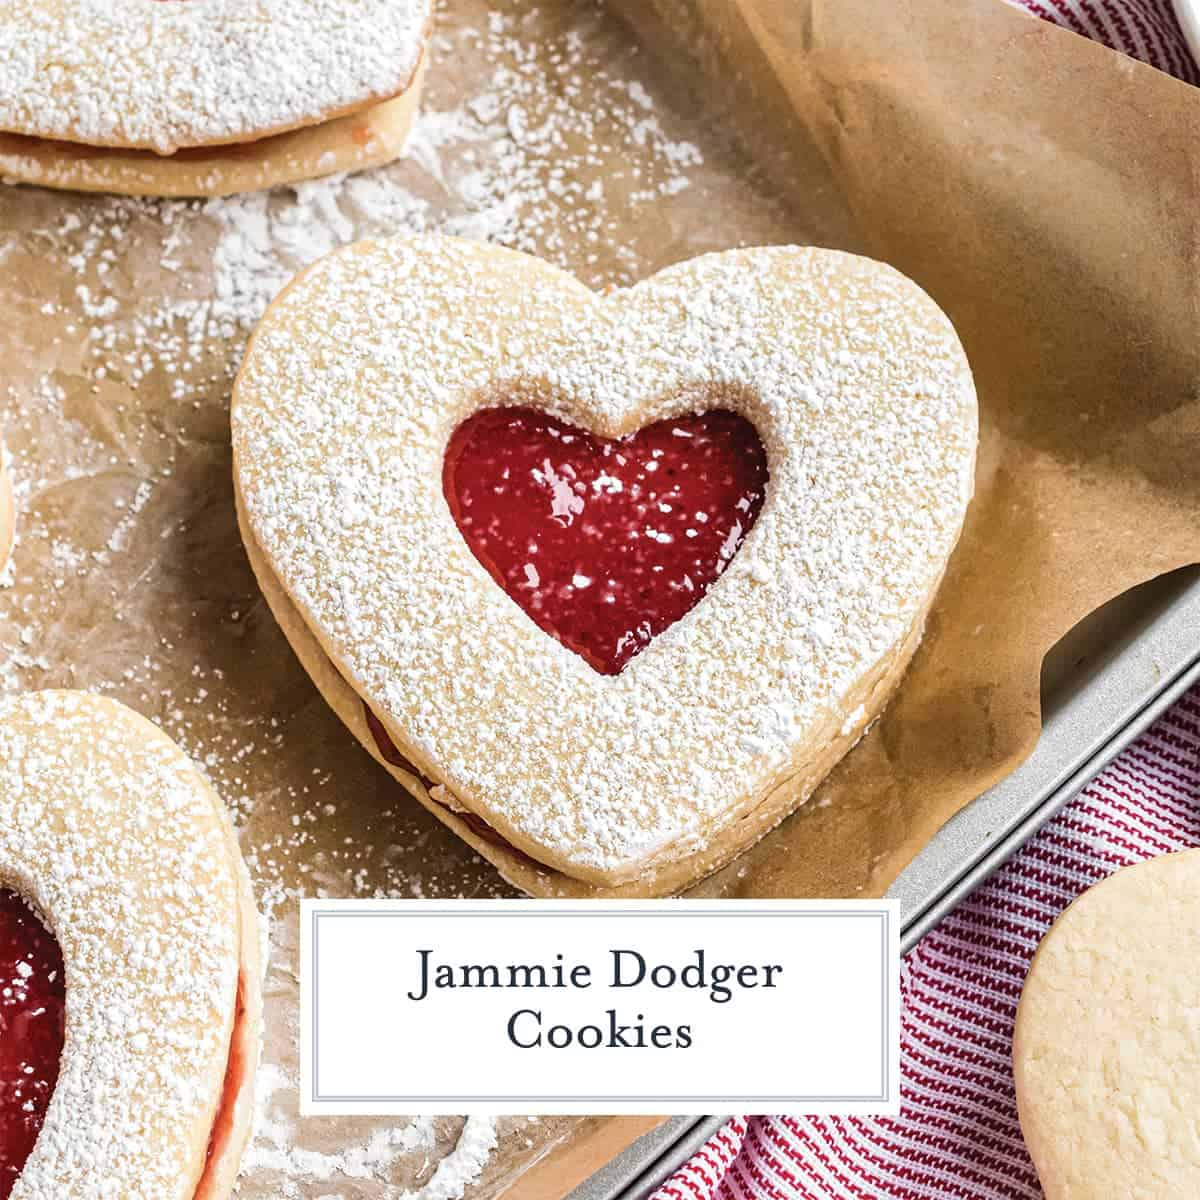 Jammie Dodger Cookies with raspberry jam.